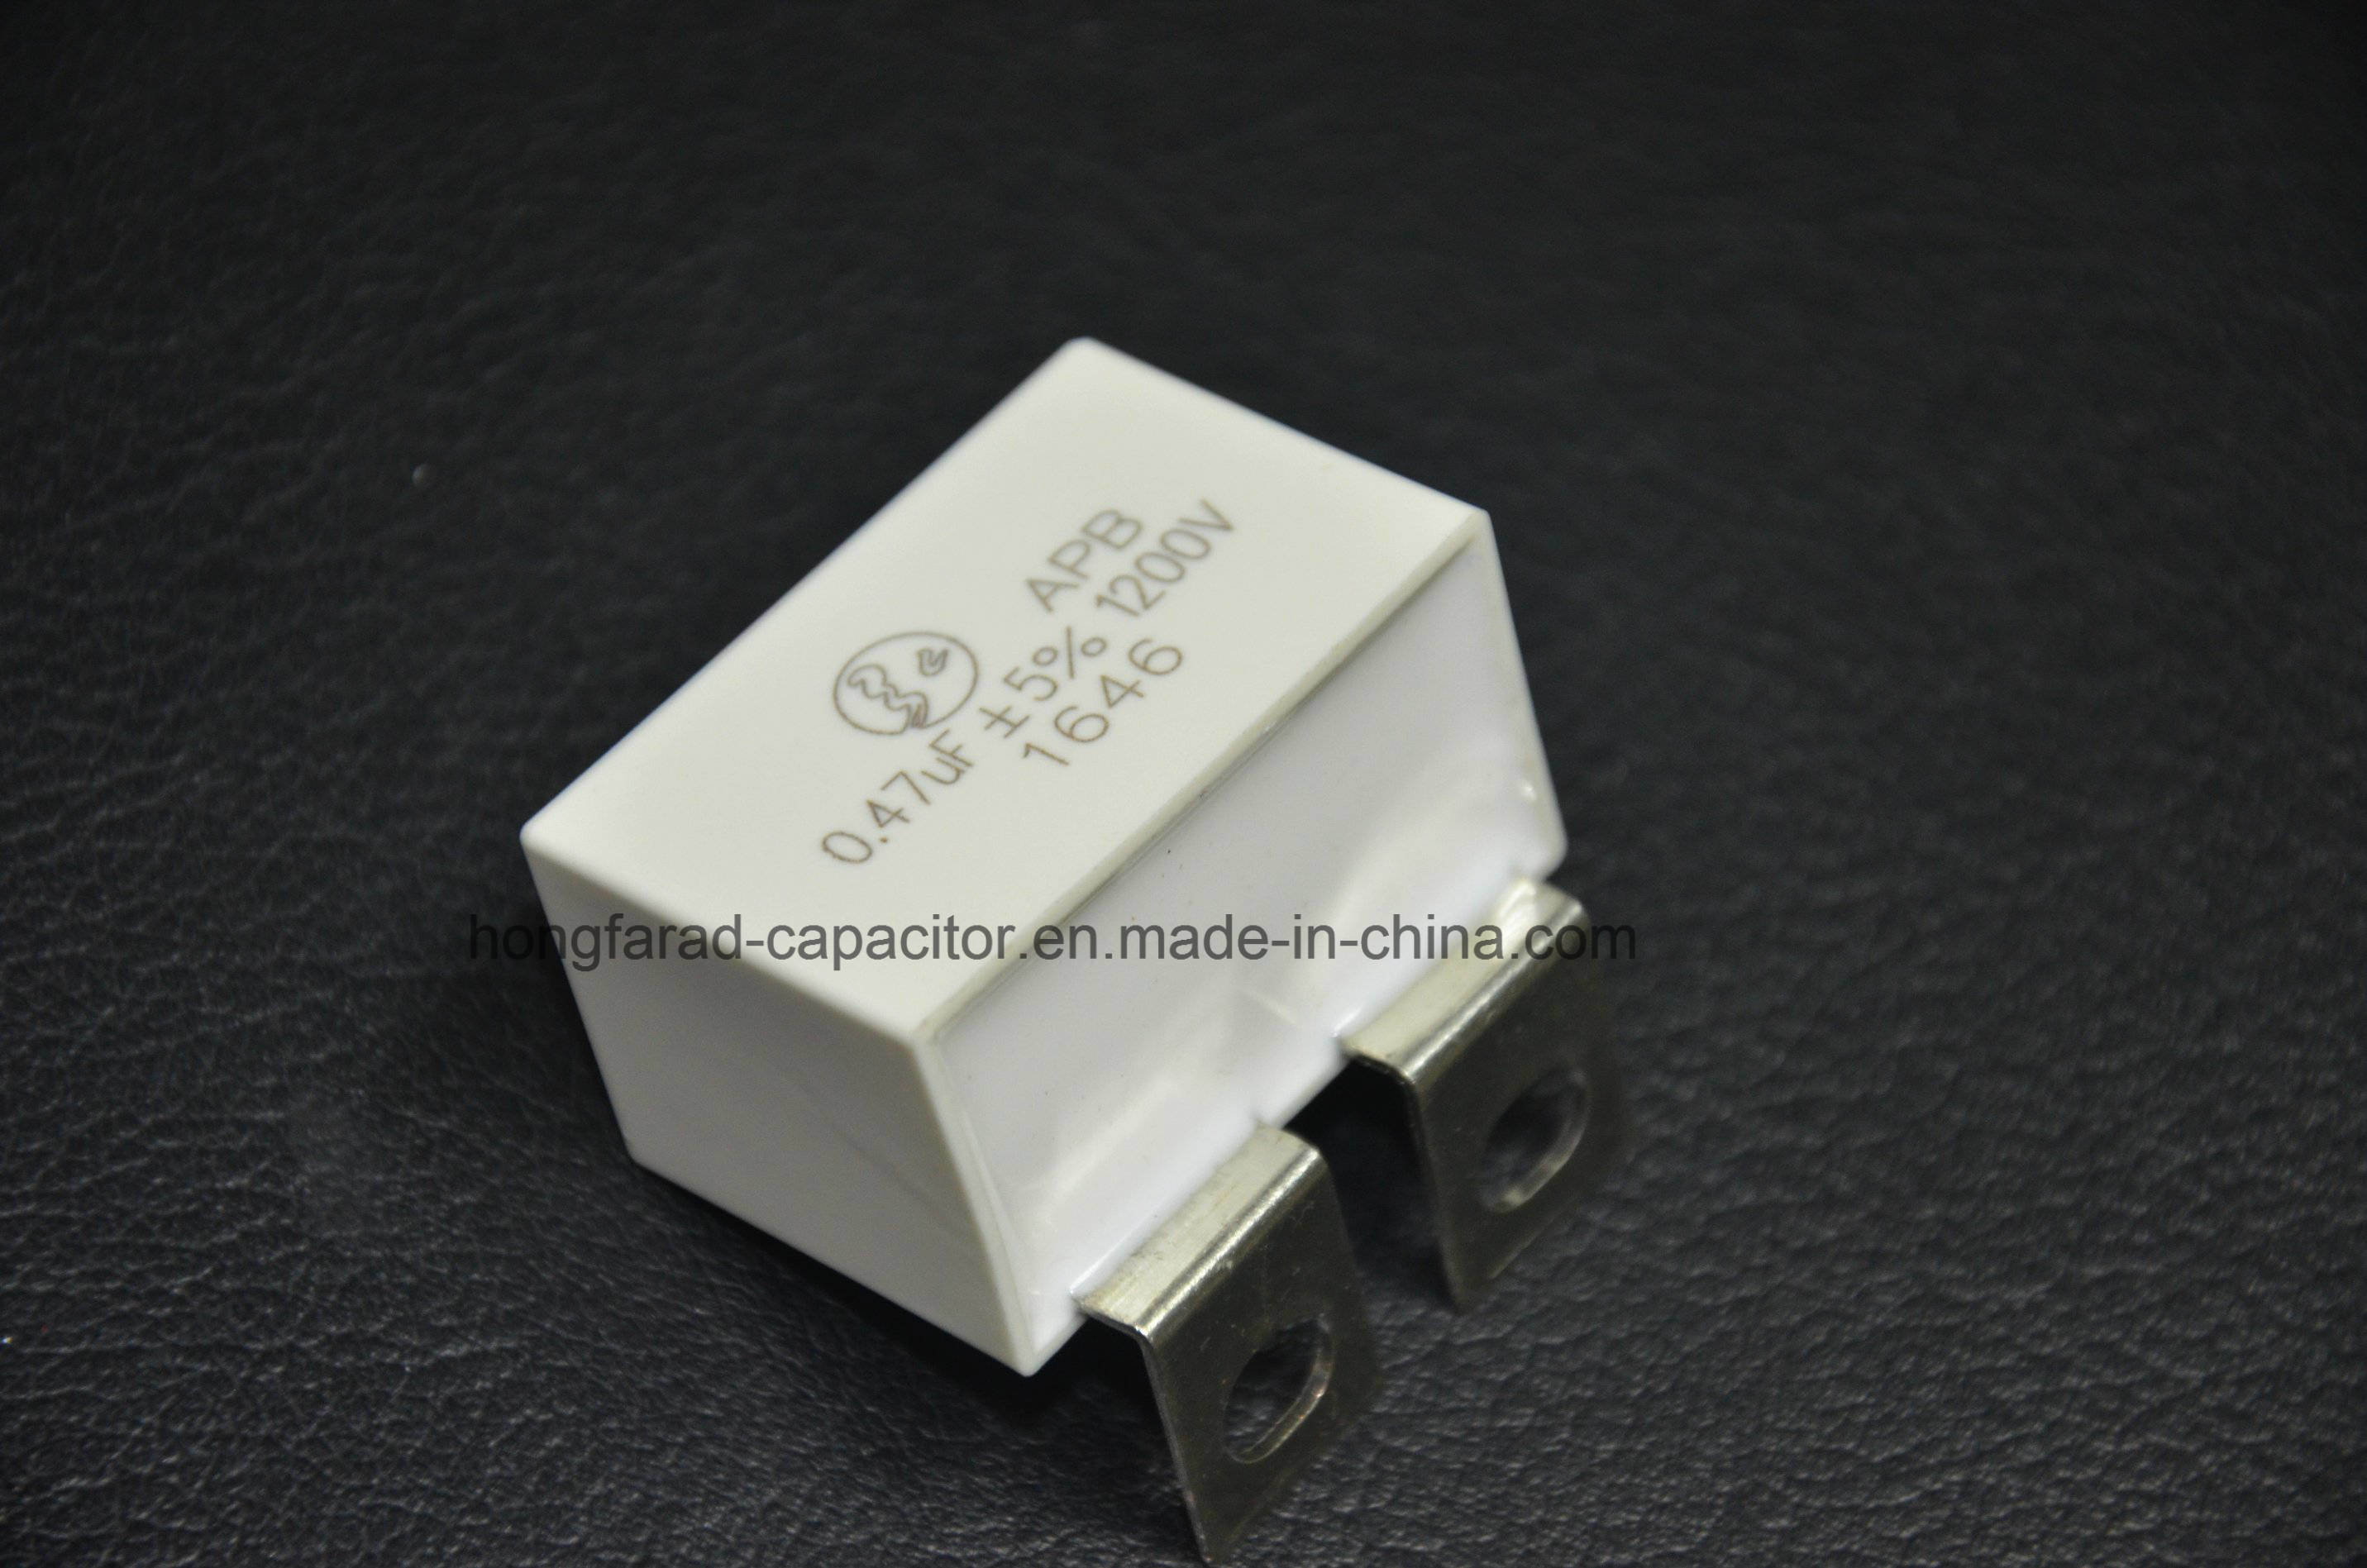 Low Price Snubber Capacitor for IGBT Apb